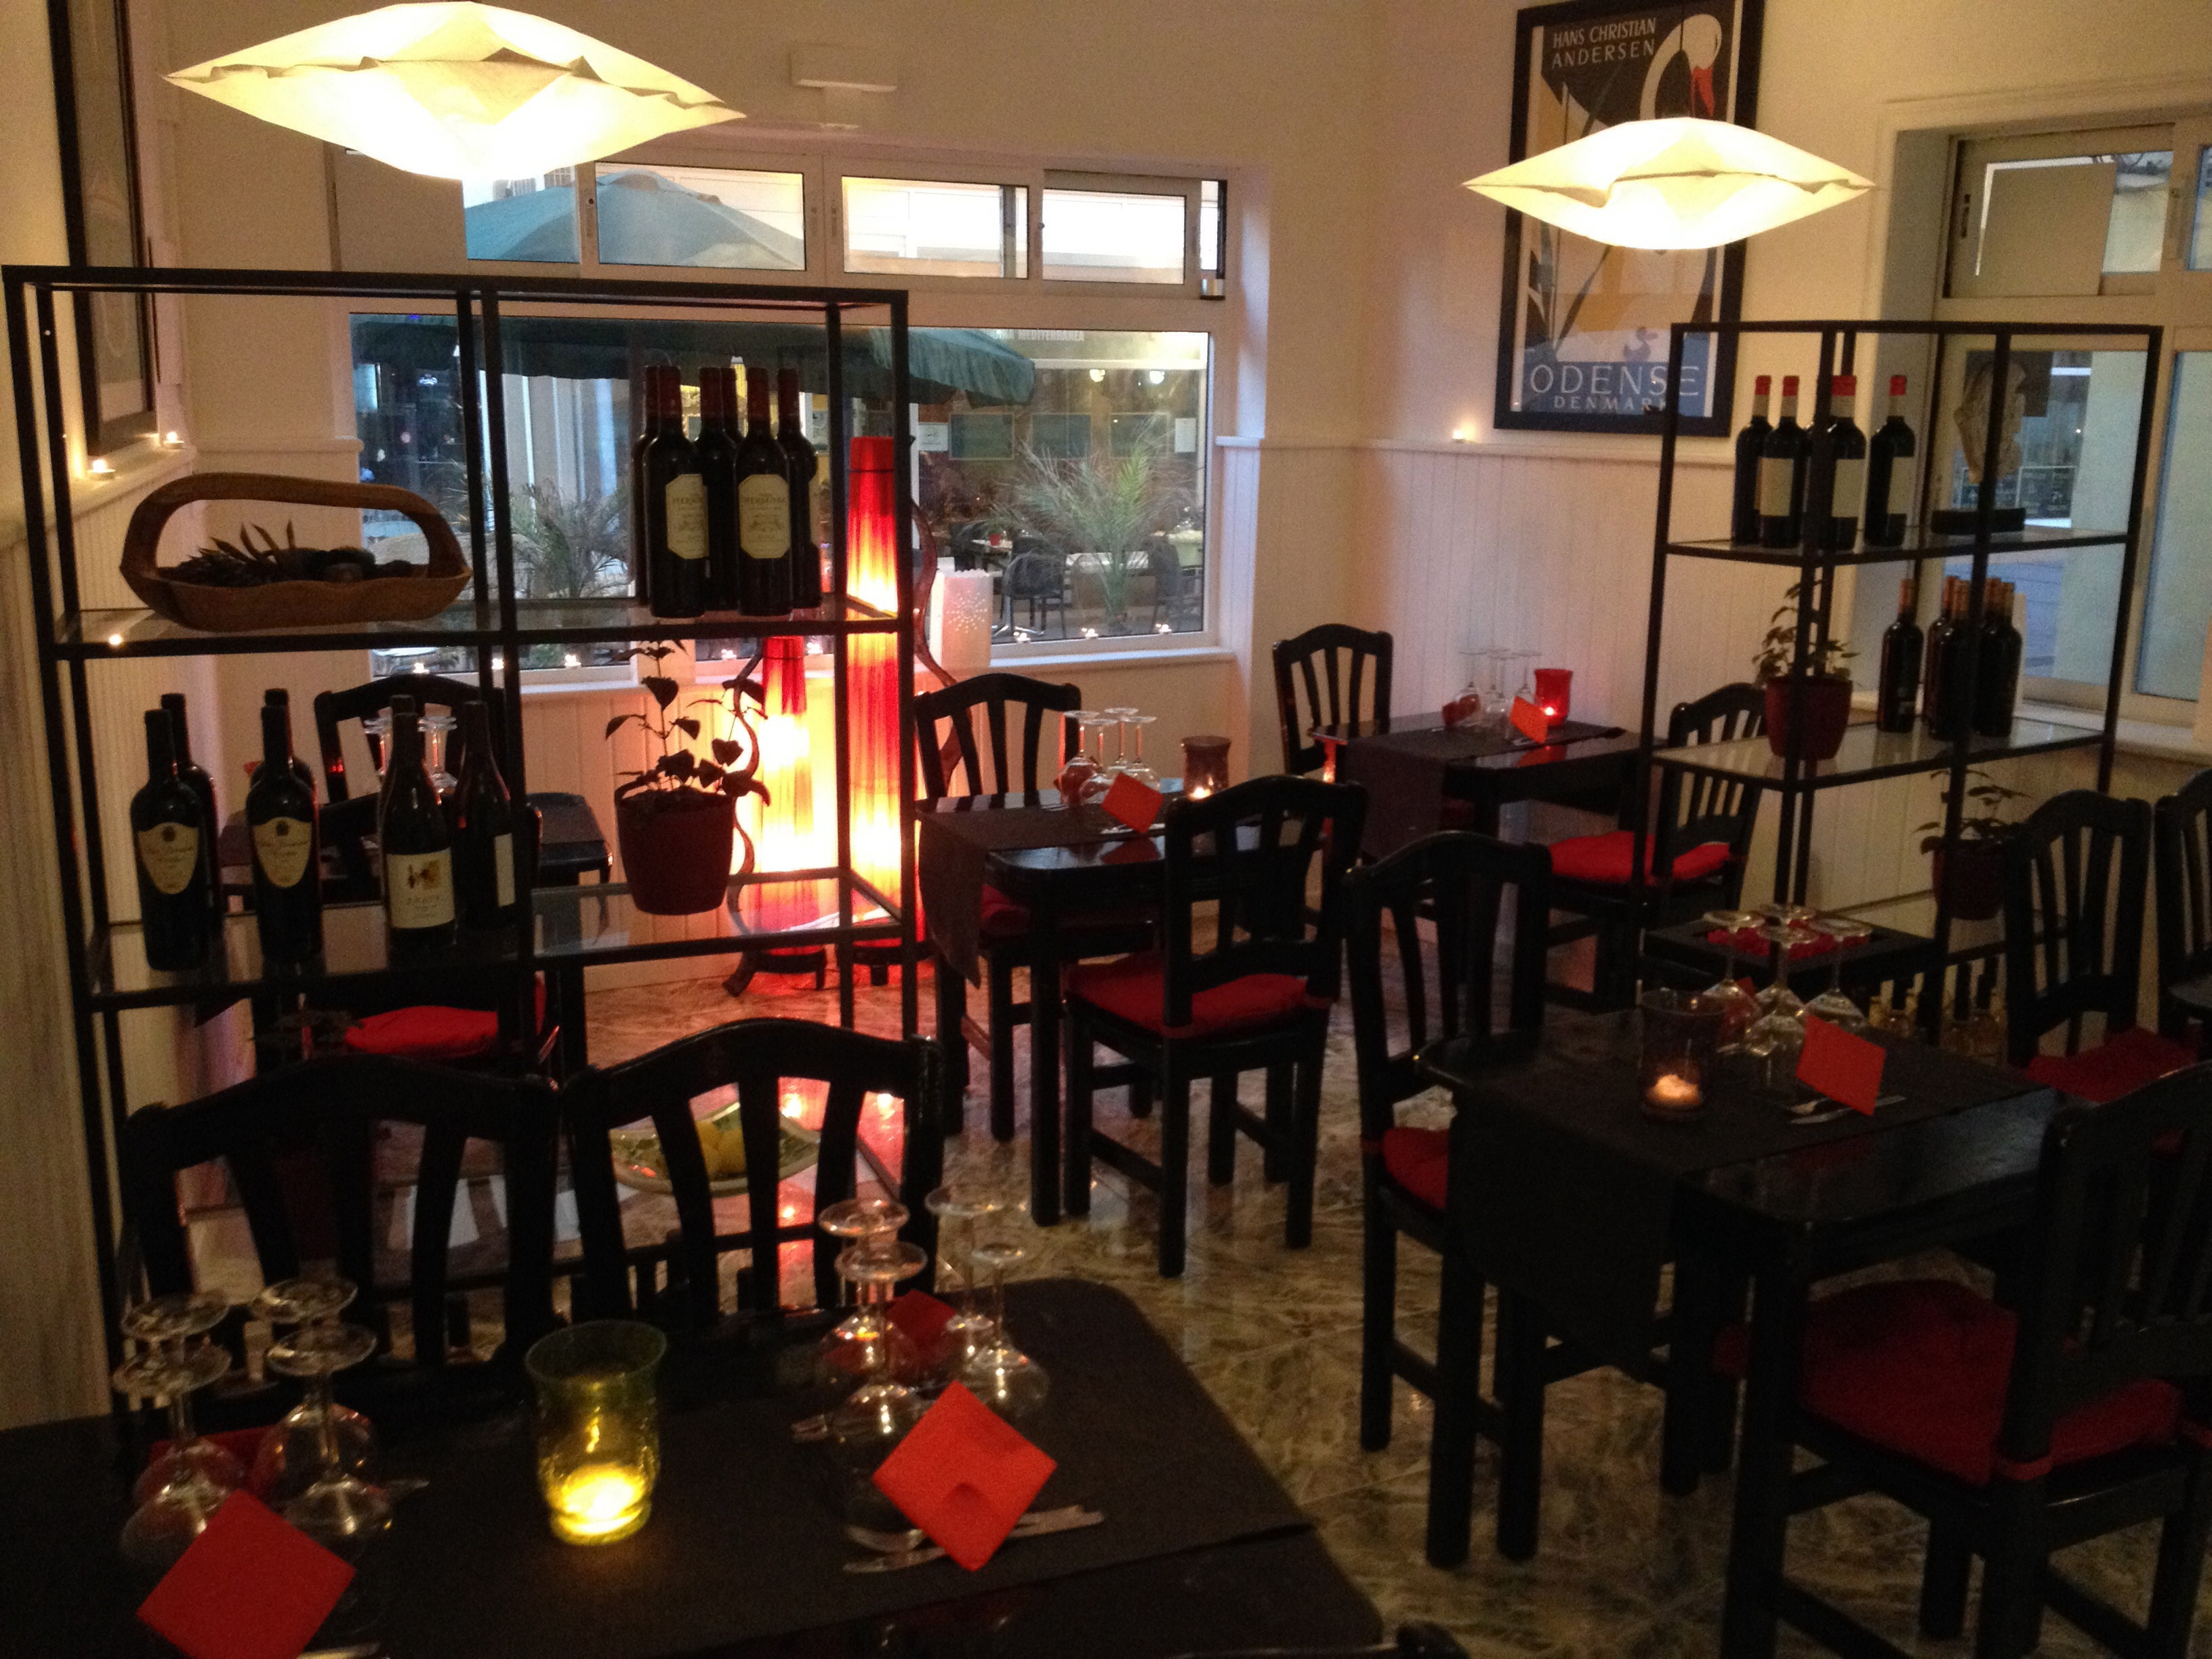 The Ugly Duckling - one of the best restaurants in Corralejo